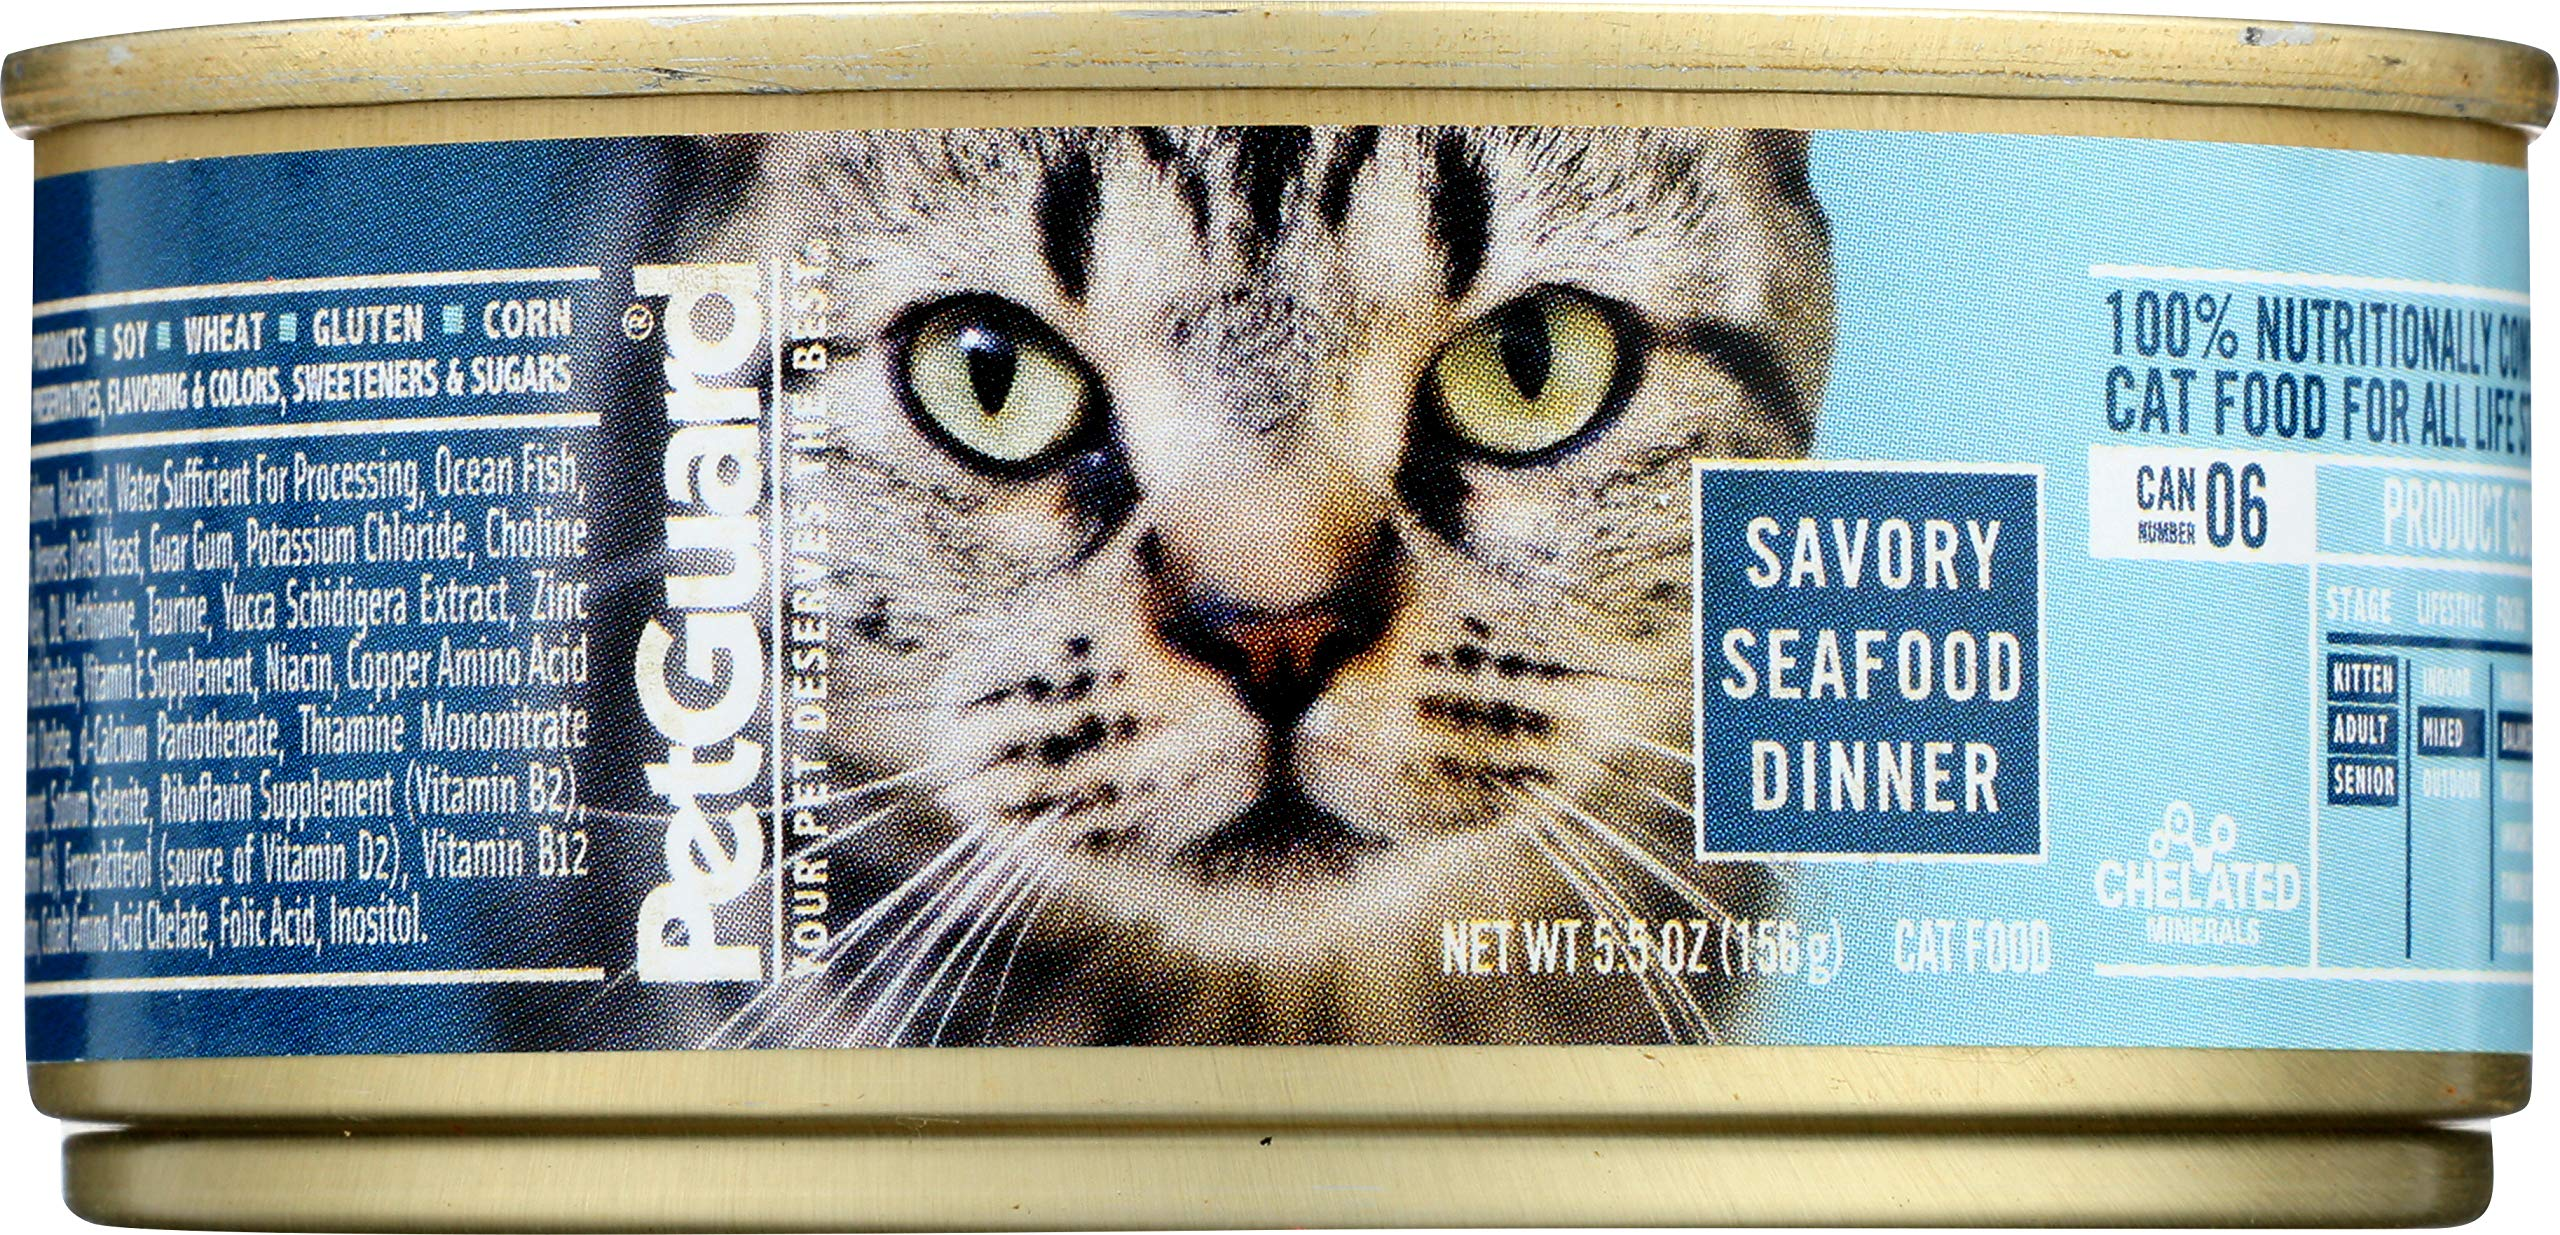 PetGuard Savory Seafood Dinner Canned Cat Food, 5.5-oz, case of 24 by PetGuard